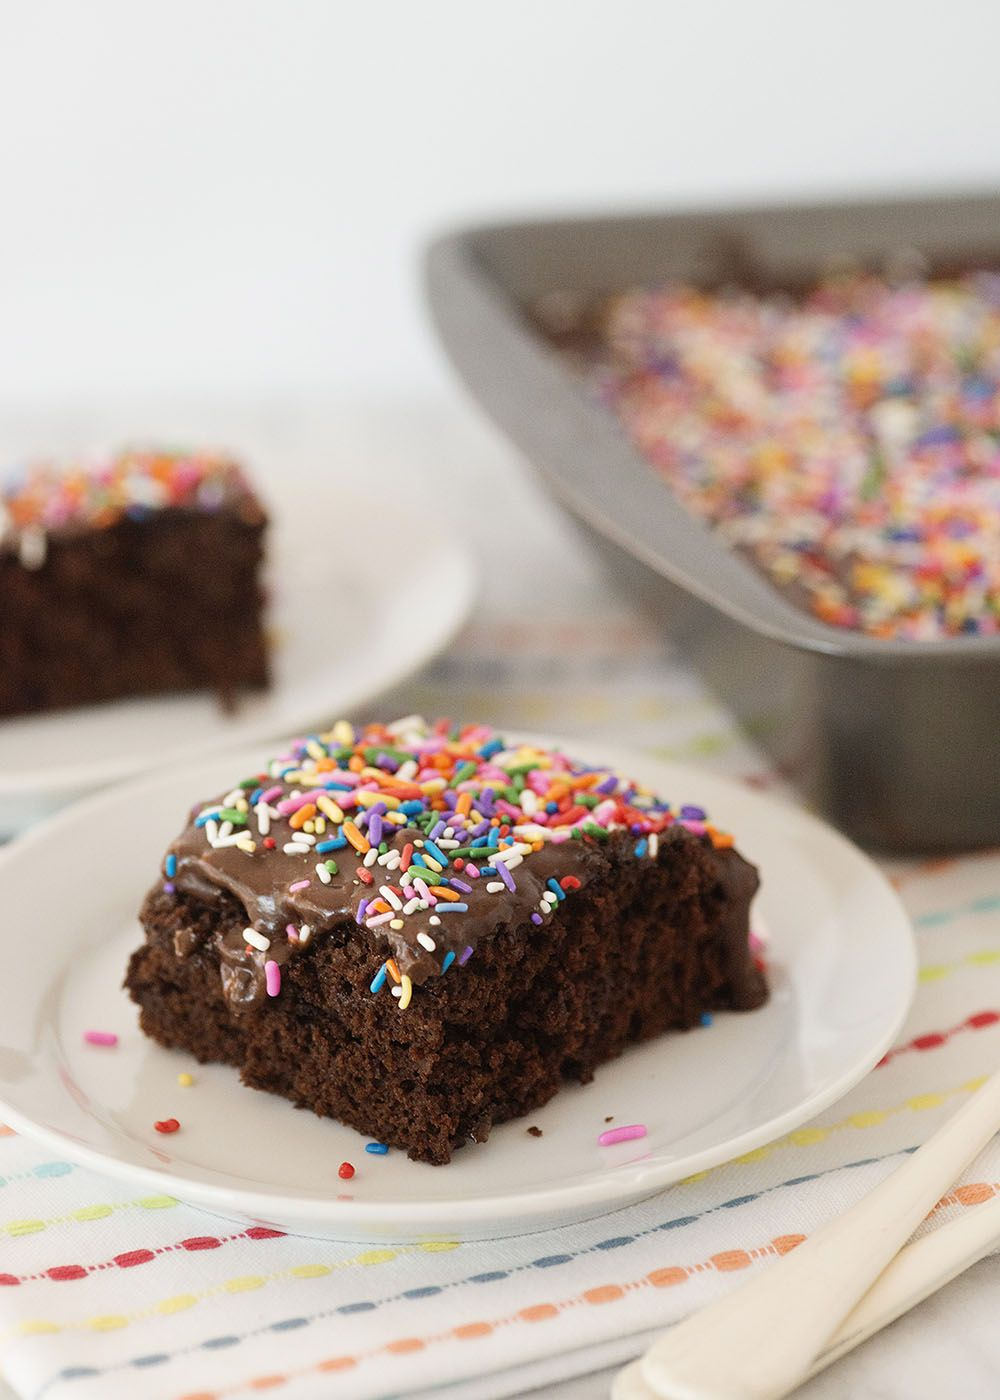 The simplest chocolate cake in the world may also be the best chocolate cake recipe I've ever tried. Here's how to make it.